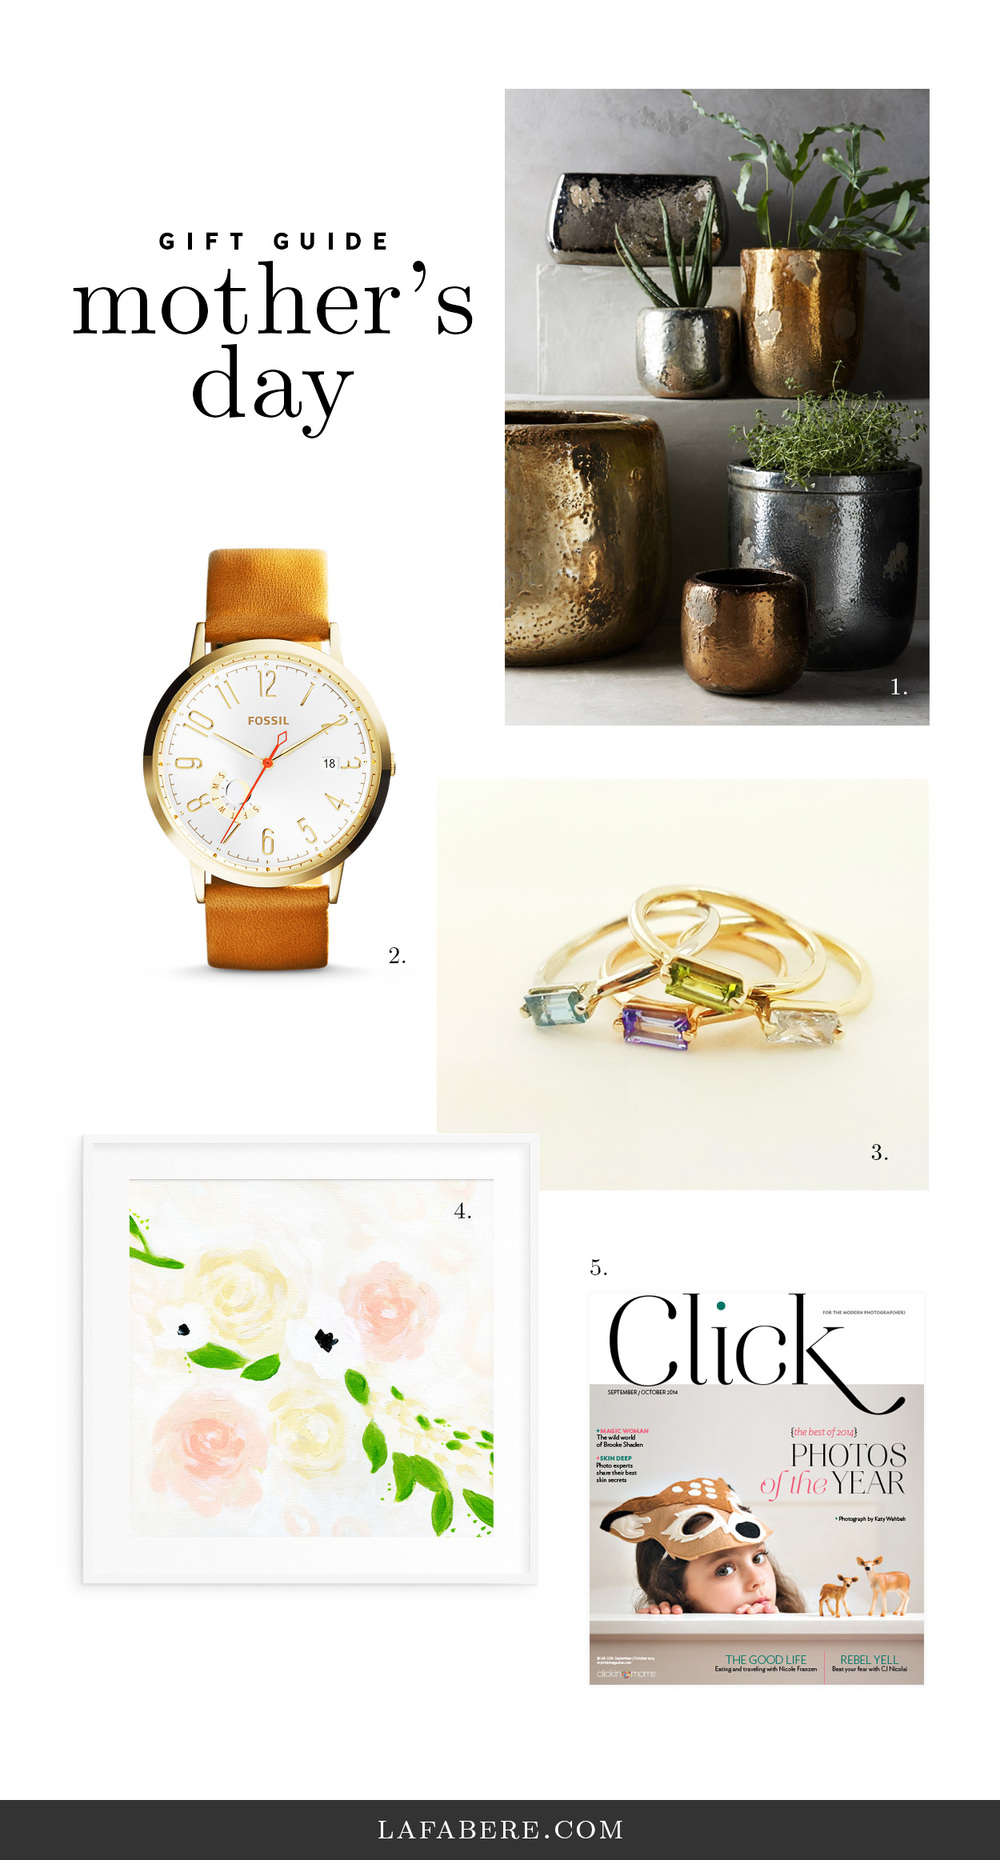 Mother's Day gift guide at lafabere.com/blog